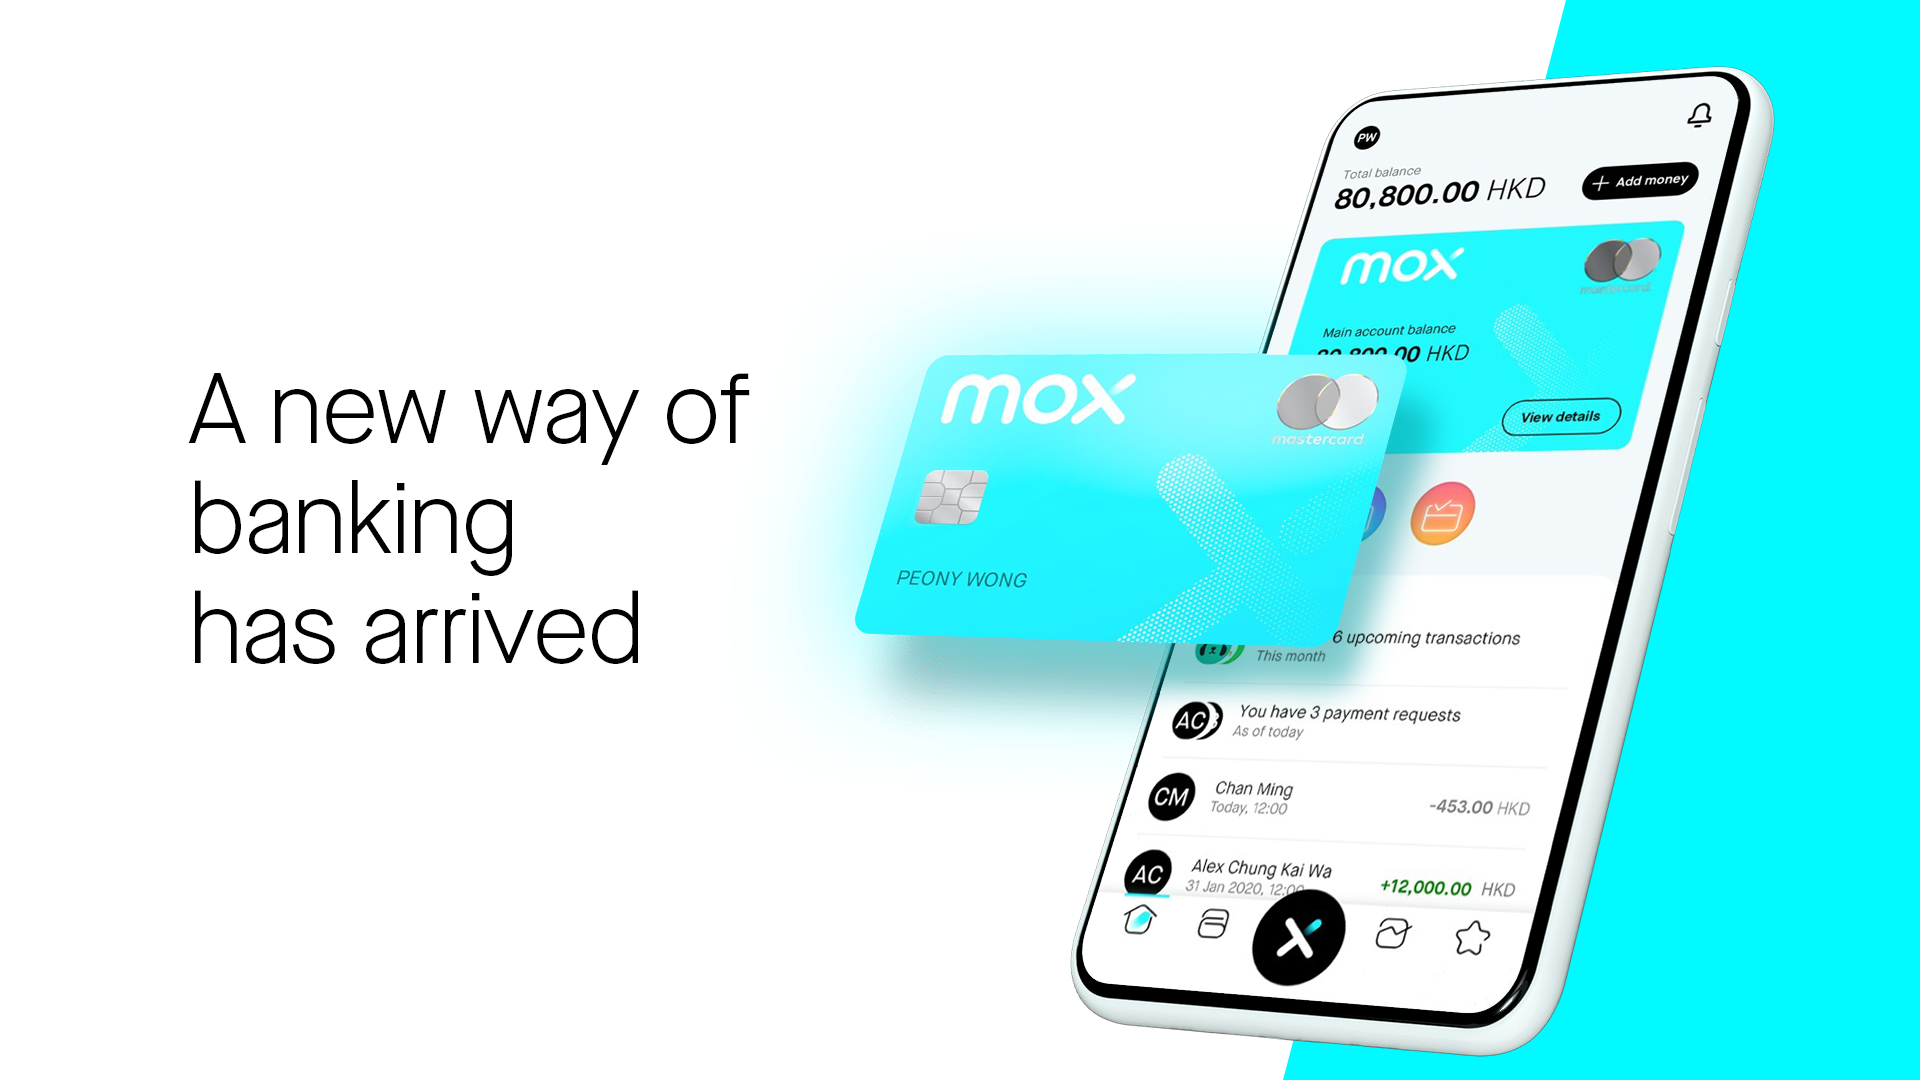 Introducing Mox